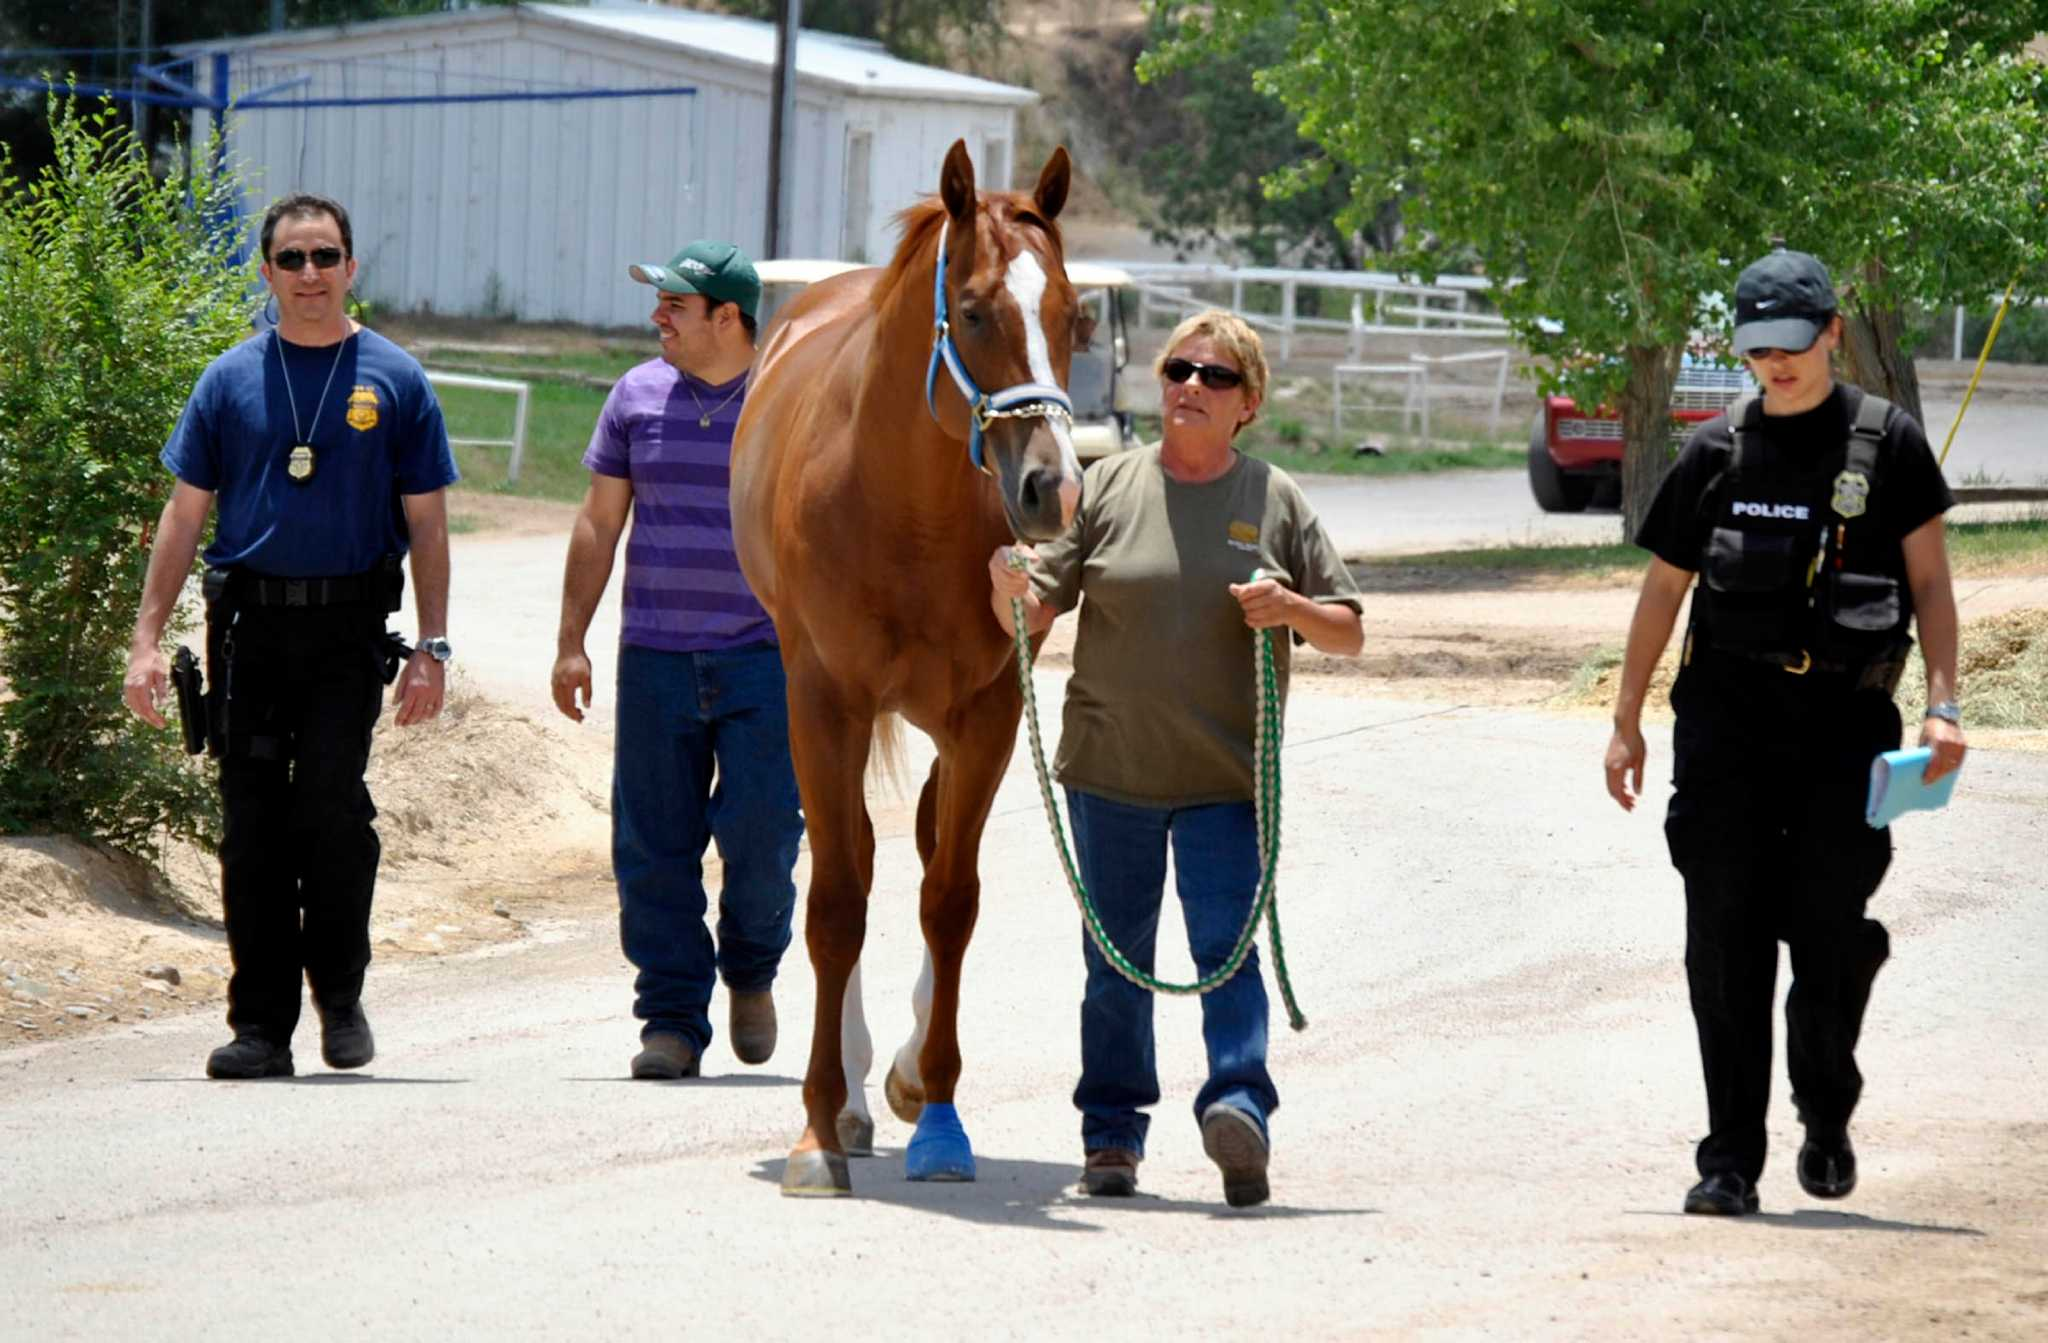 Seized horse tied to Zetas is paying off for feds - Houston Chronicle